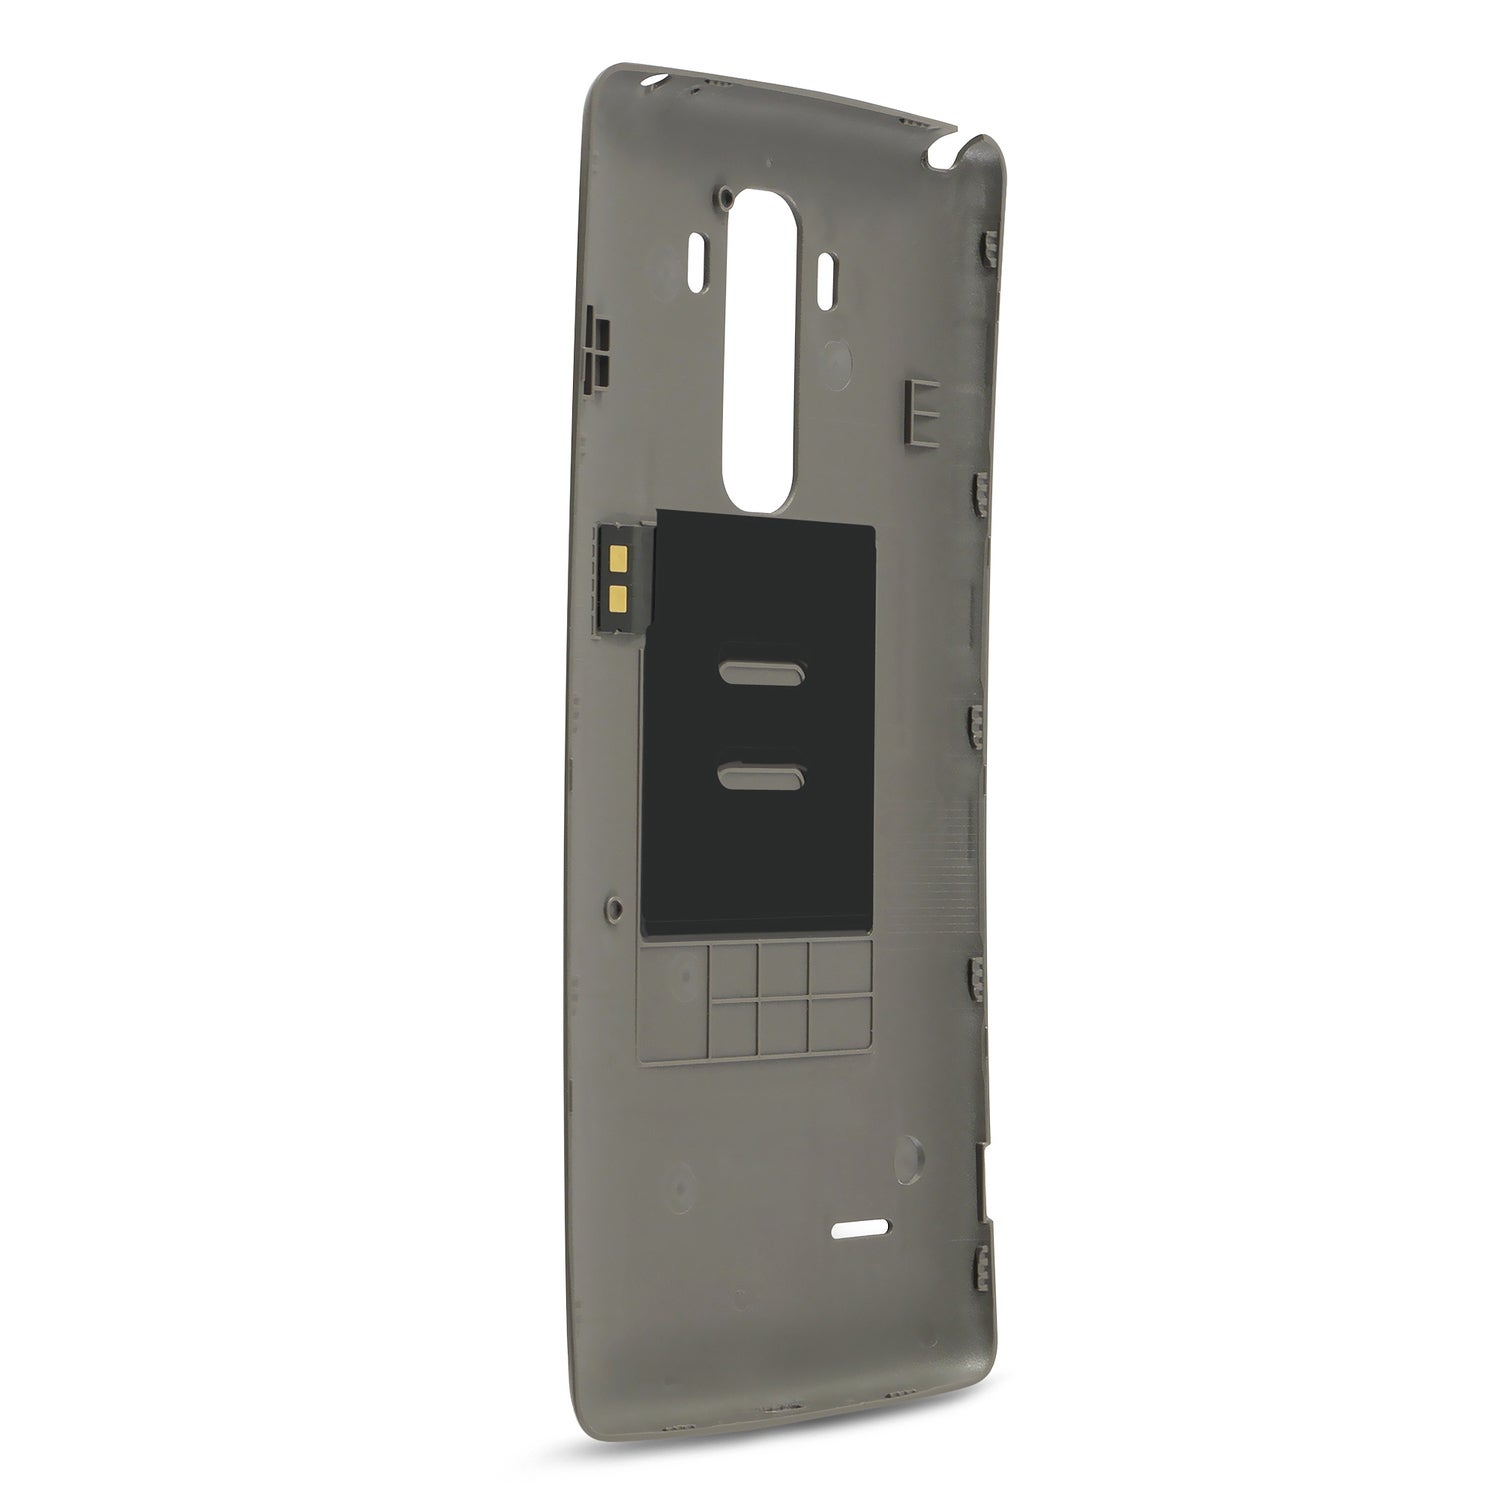 336a72ba2f3 Shop LG Original OEM Battery Door Back Cover Replacement for LG G Stylo  H635 - Free Shipping On Orders Over $45 - Overstock - 14209595